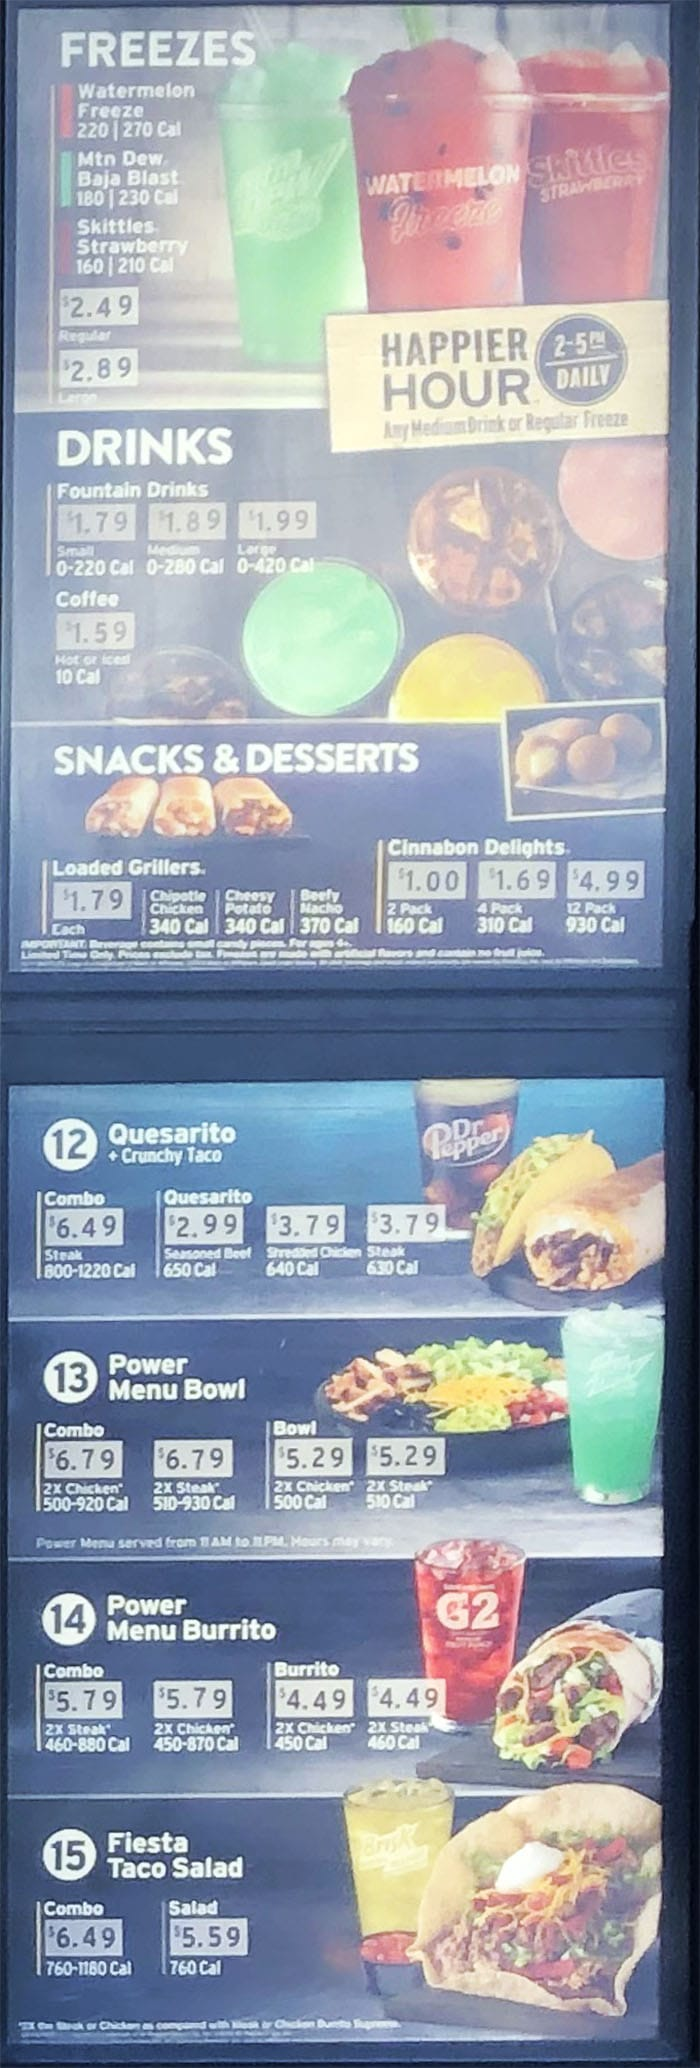 Taco Bell menu - freezes, drinks, desserts, more combos